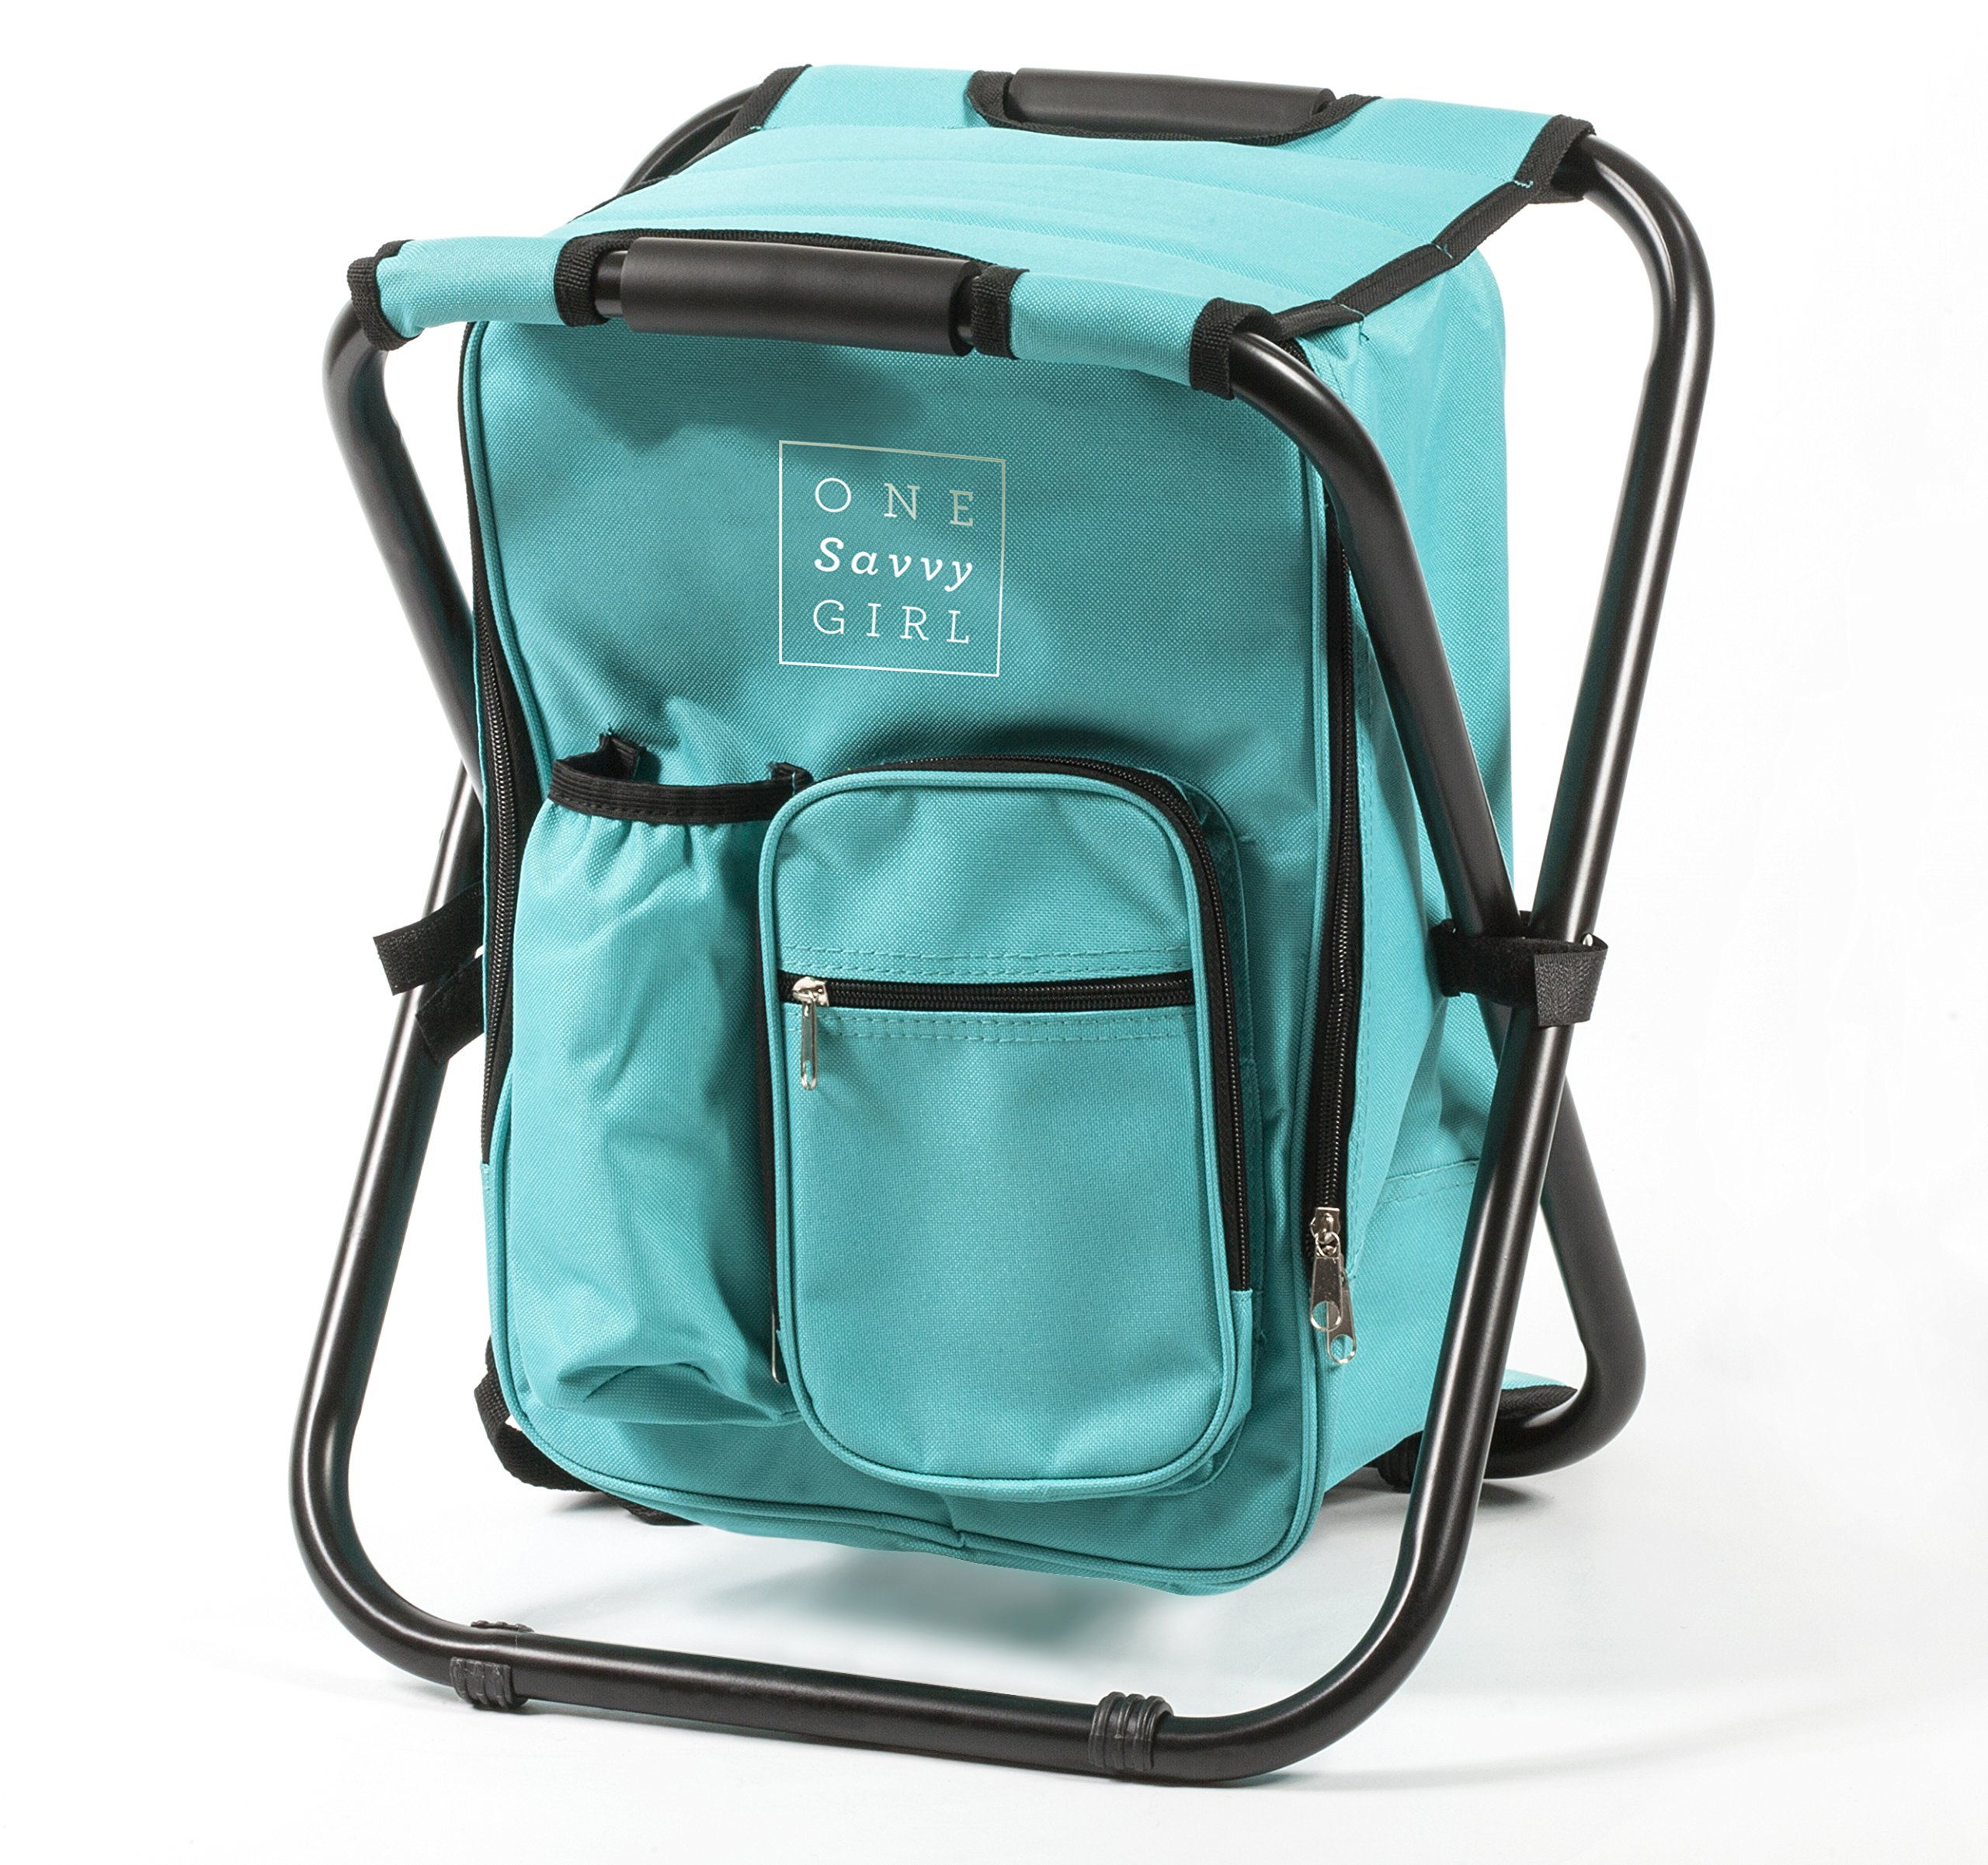 One Savvy Girl Ultralight Backpack Cooler Chair - Compact Lightweight and Portable Folding Stool - Perfect for Outdoor Events, Travel, Hiking, Camping, Tailgating, Beach, Parades & More by One Savvy Girl